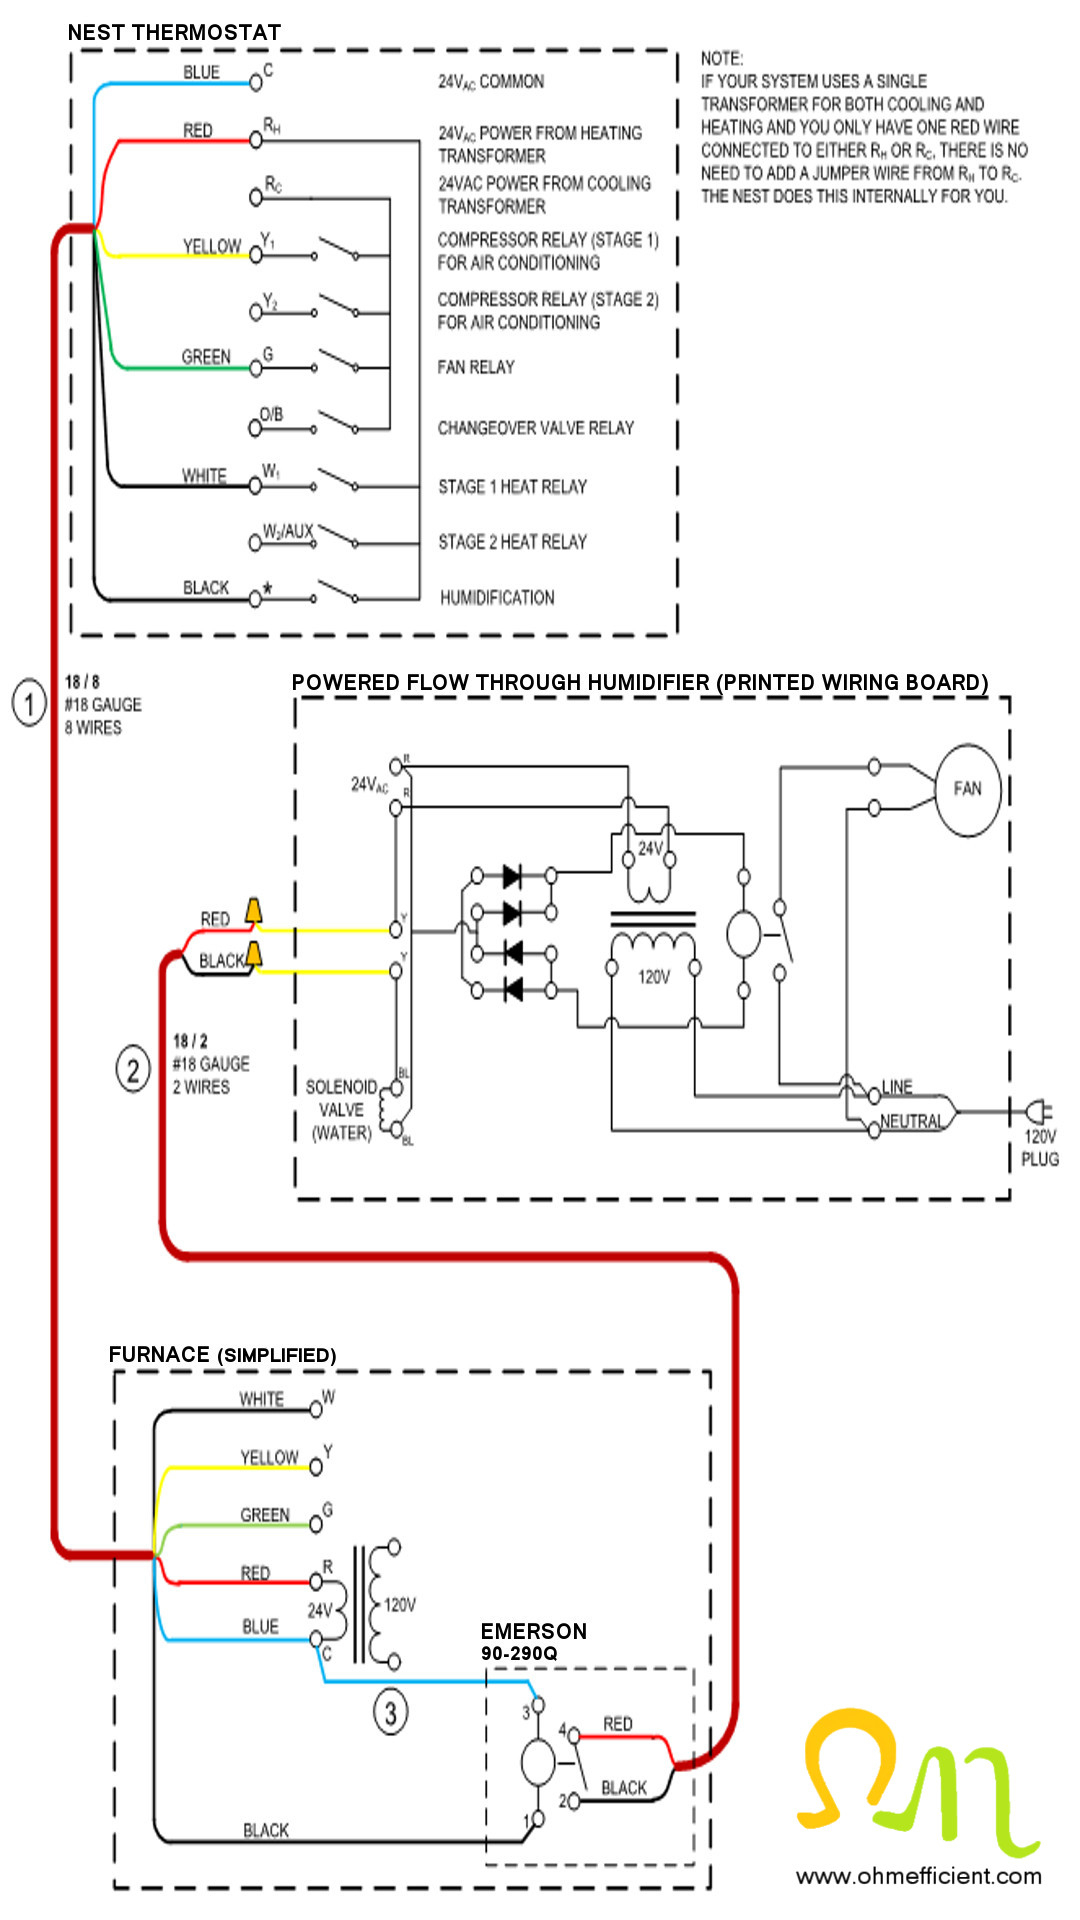 How To Connect & Setup A Nest Thermostat To Function As A Humidistat - Wiring Diagram Nest Thermostat